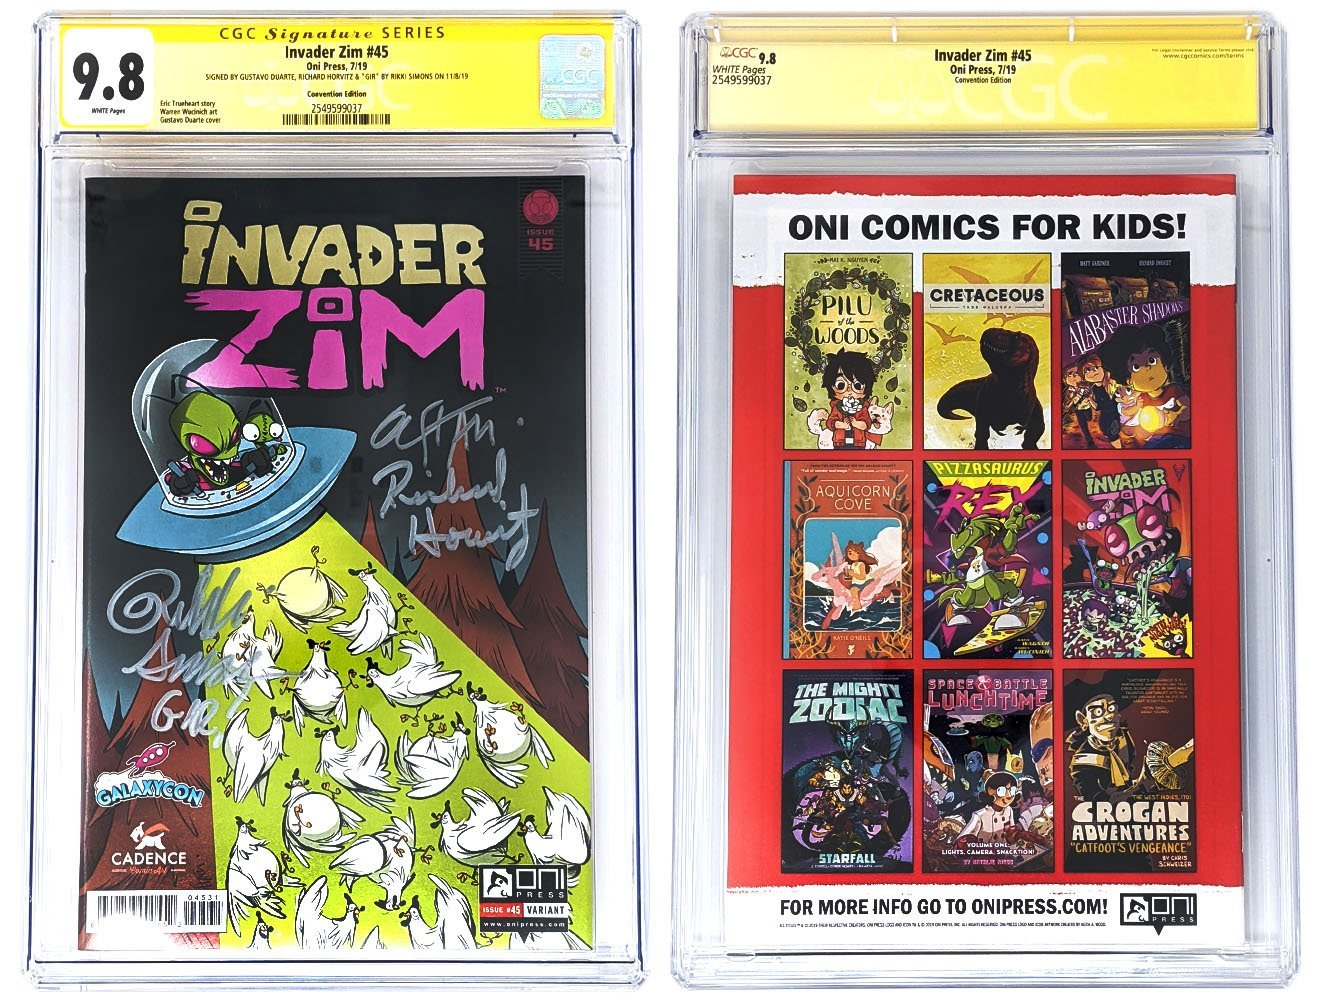 Invader Zim #45 Sealed GalaxyCon Exclusive CGC Certified Signed by Gustavo Duarte, Richard Horvitz & Rikki Simons GalaxyCon